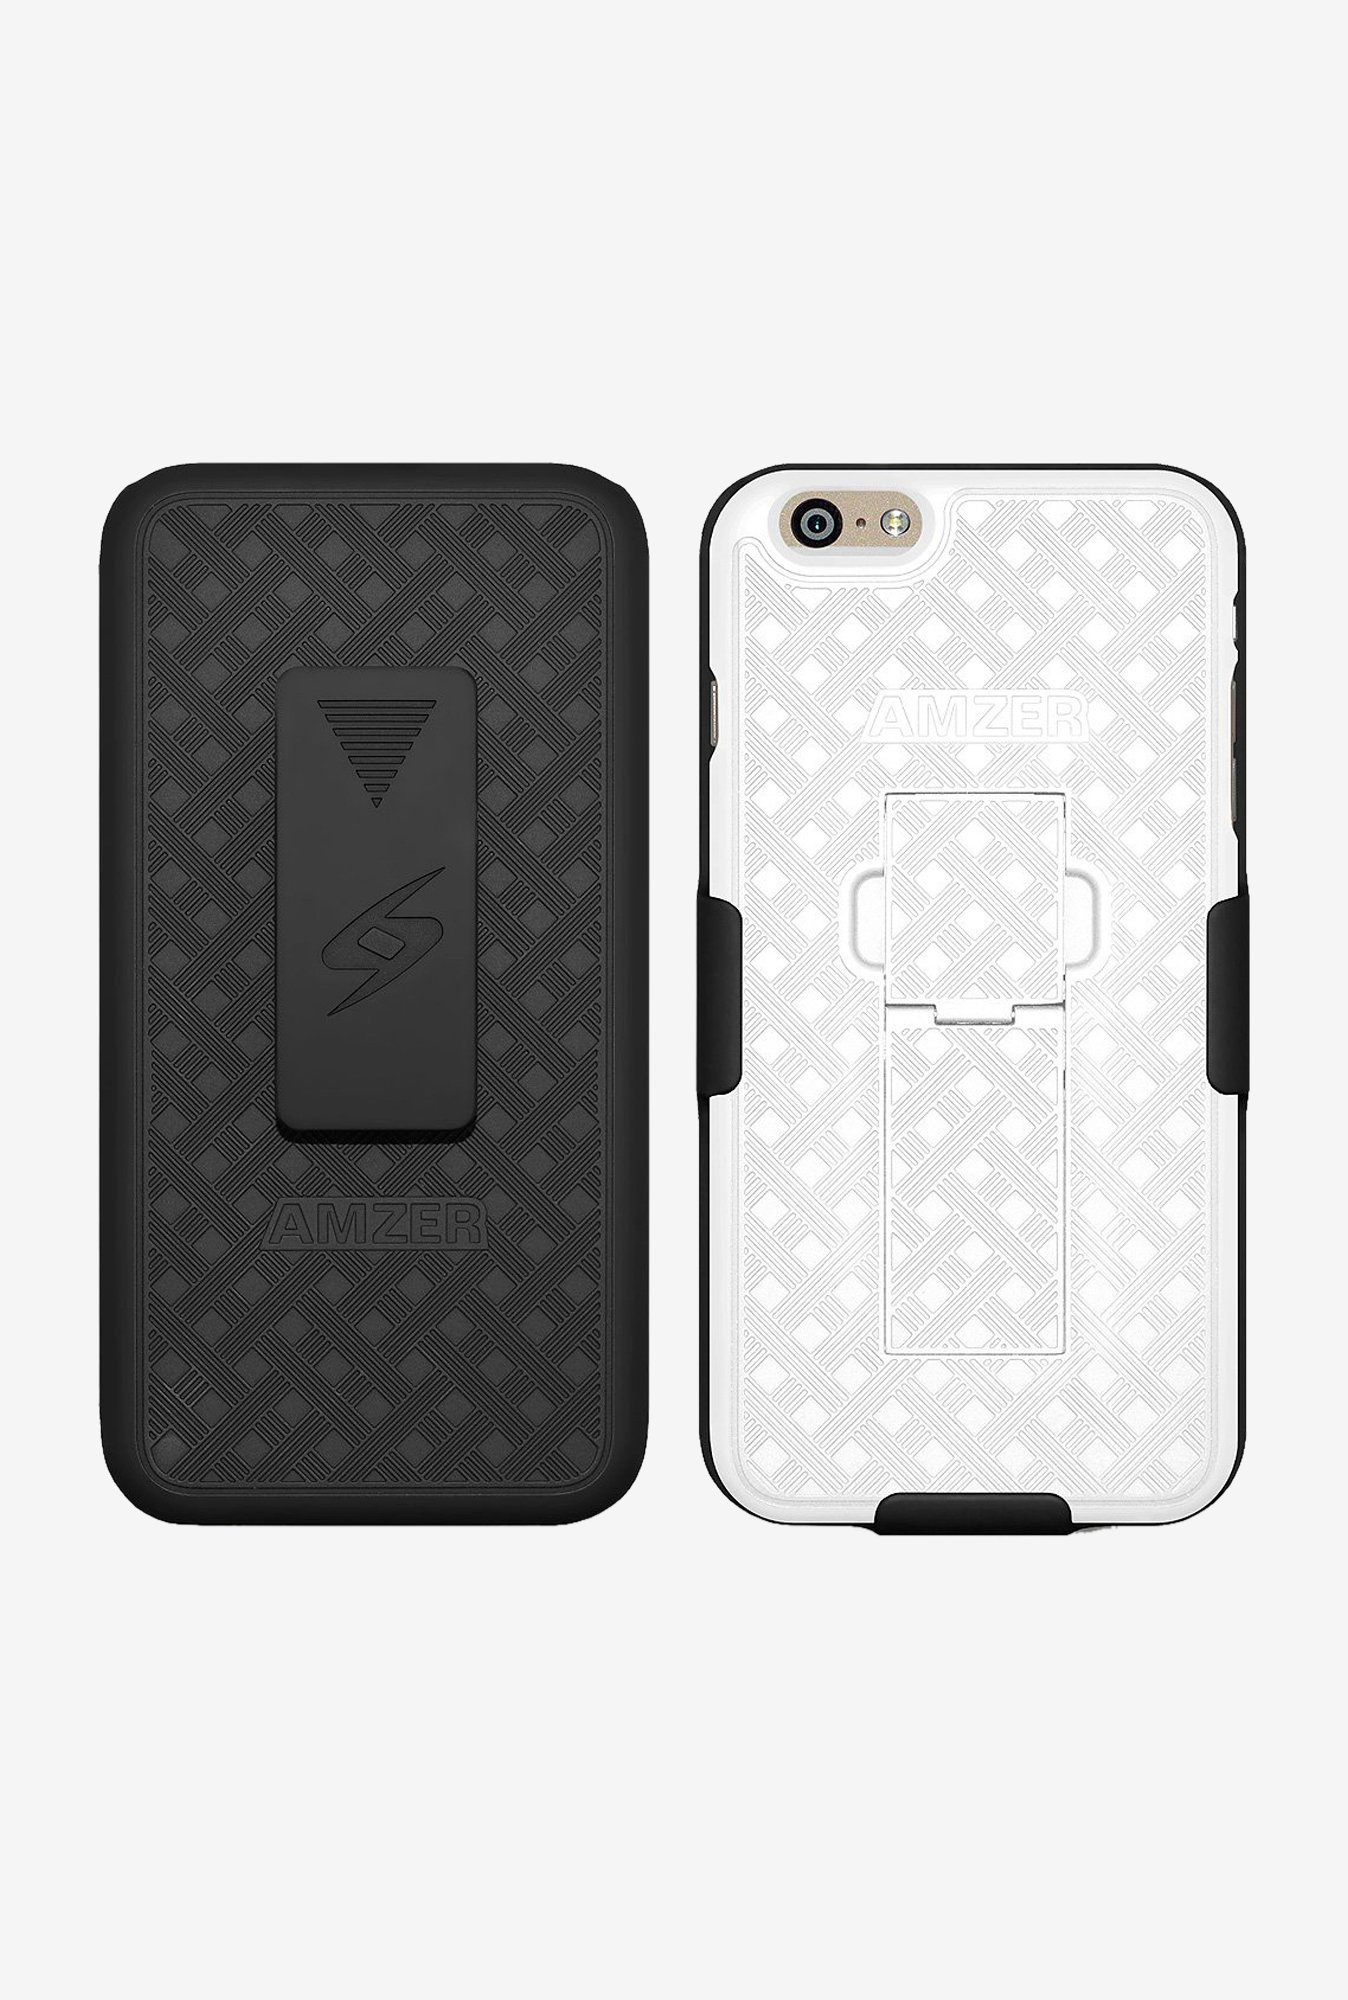 Amzer Shellster Case with Kickstand Black/White for iPhone 6